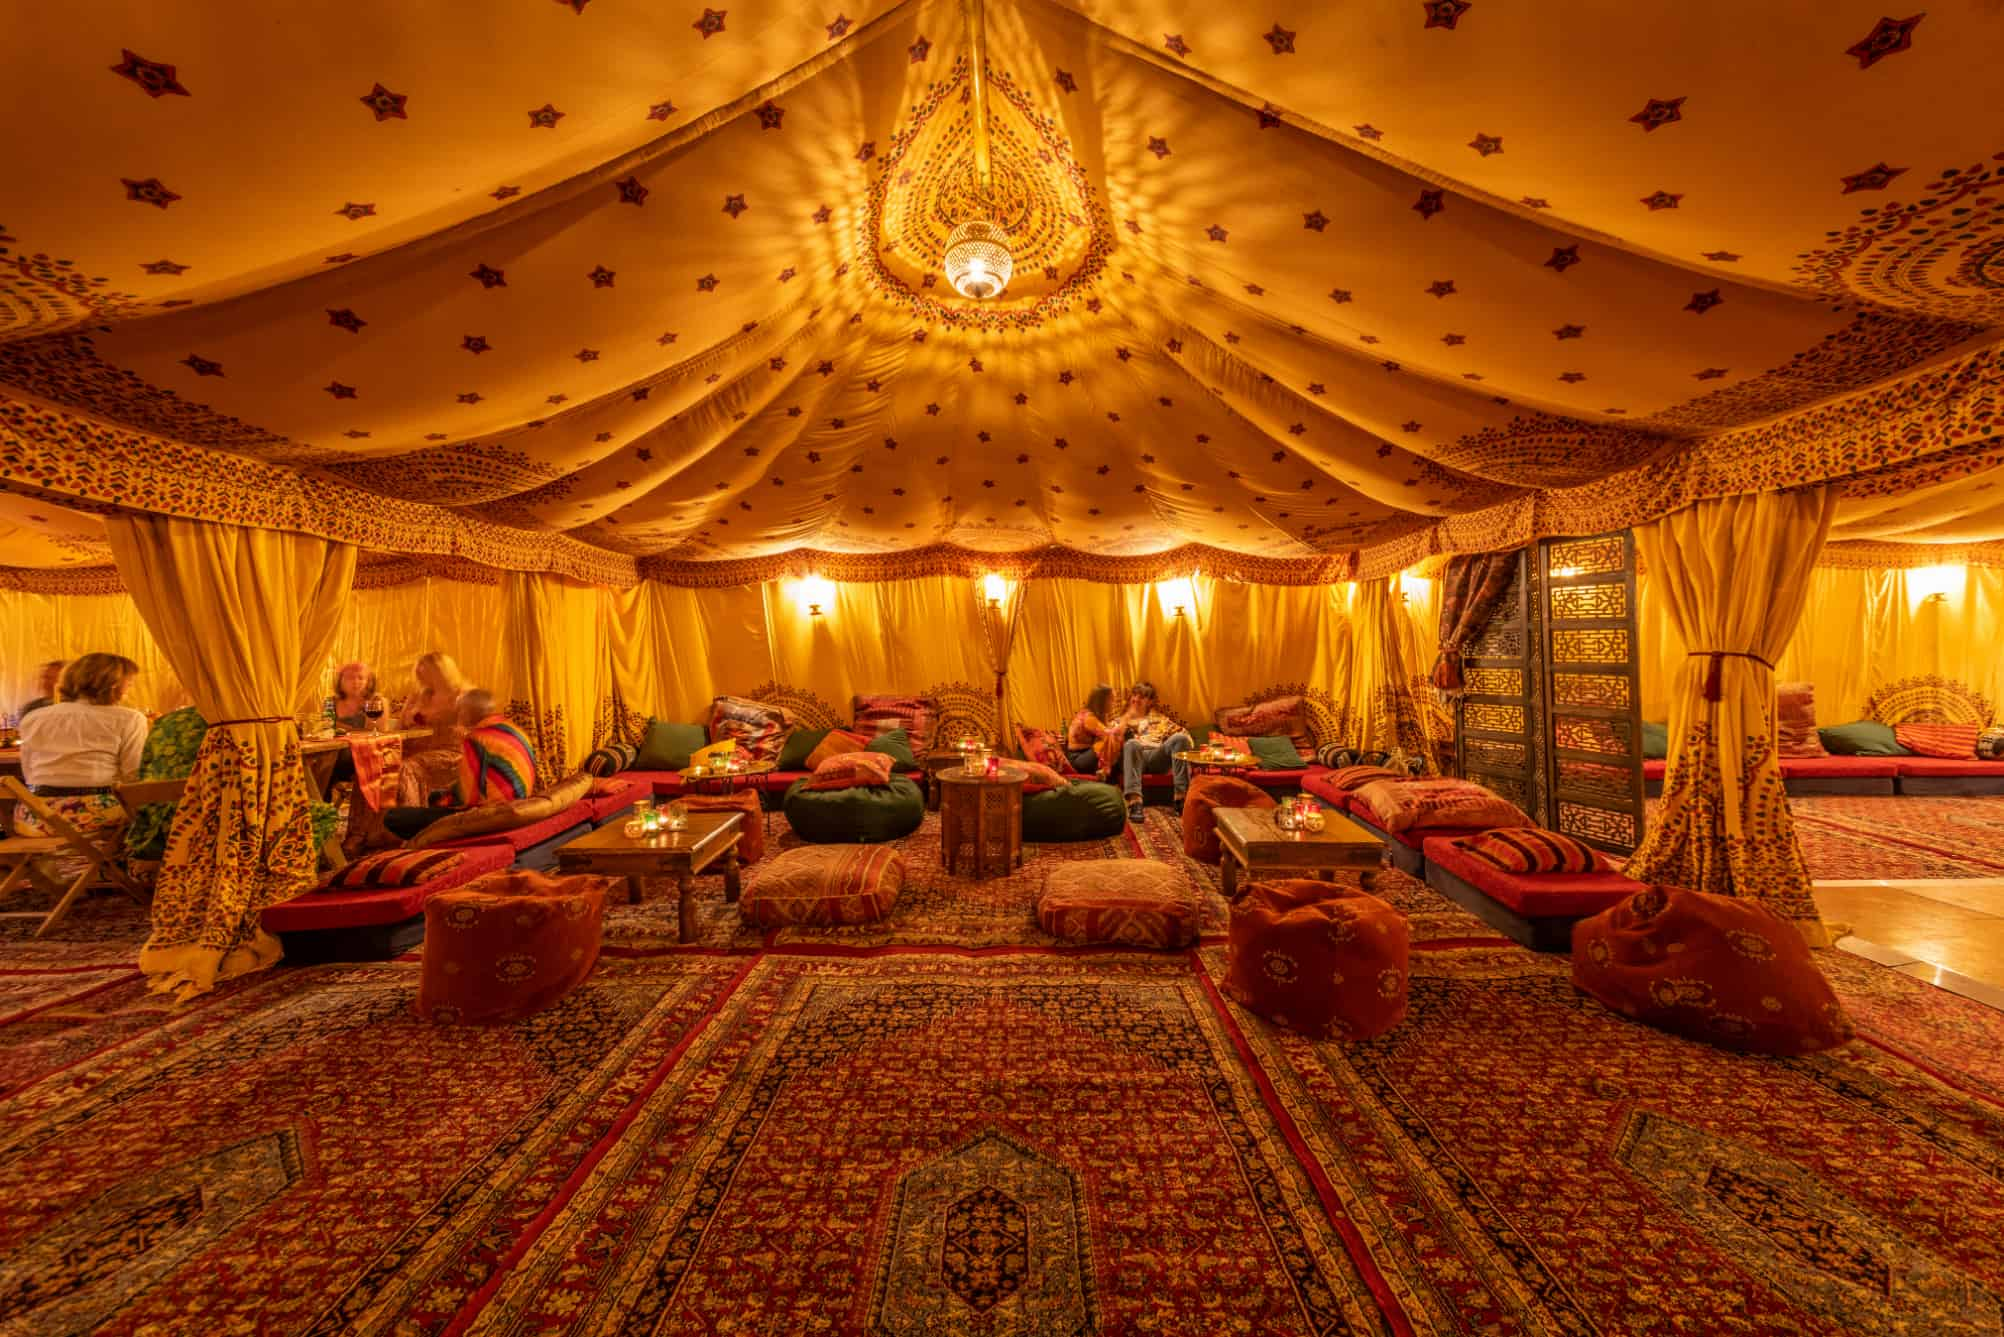 Inside an Arabian tent with low seating